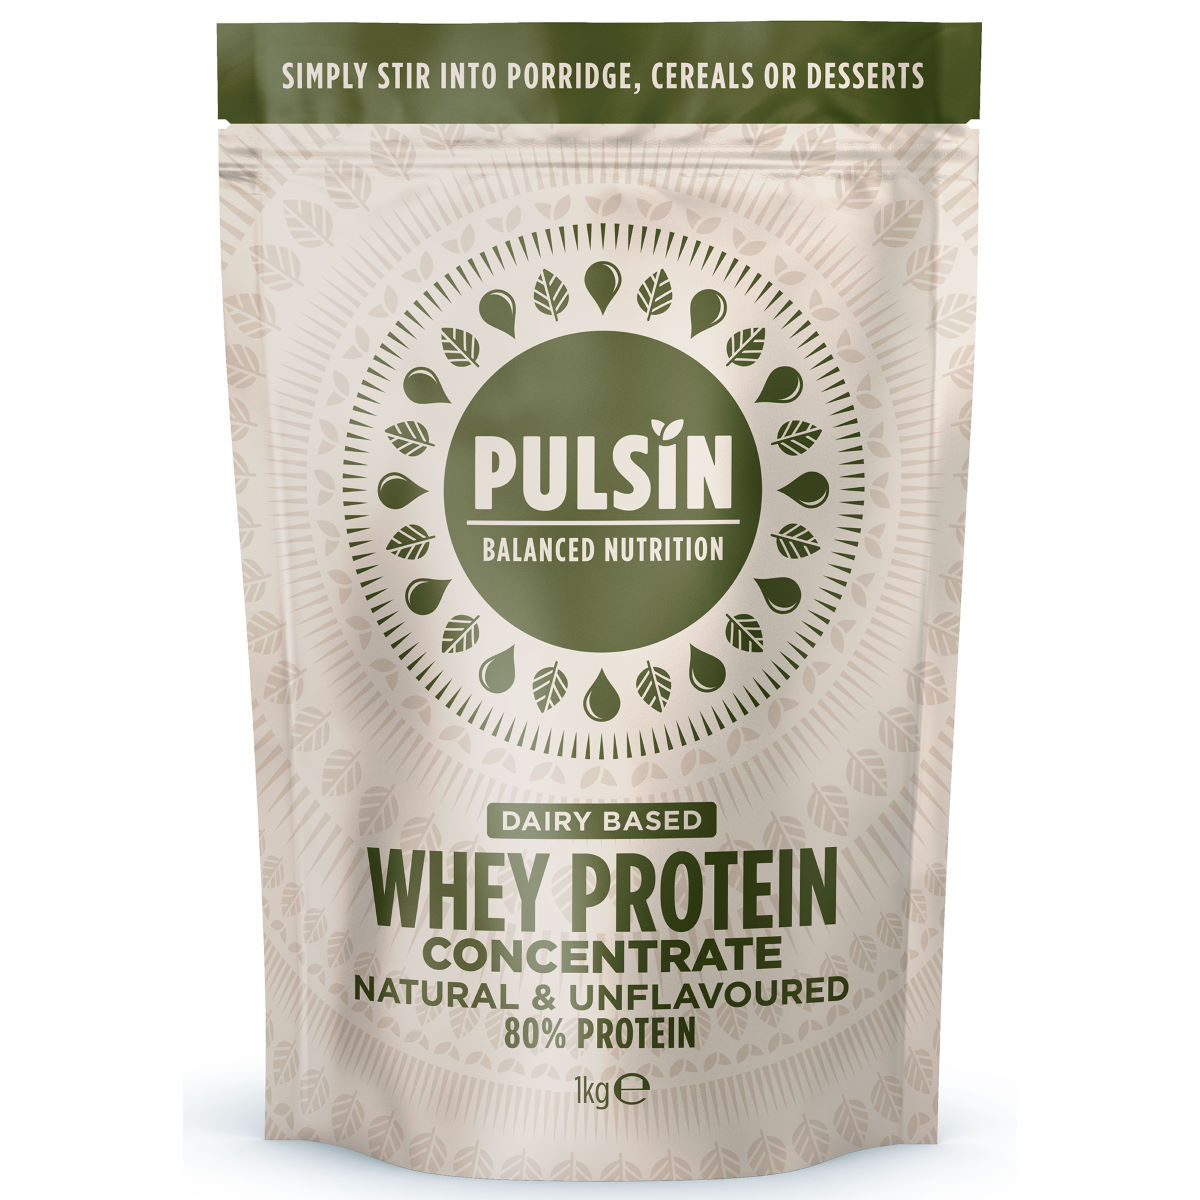 Pulsin Simply Whey Protein Powder (1kg) - 1kg Natural  Whey Protein